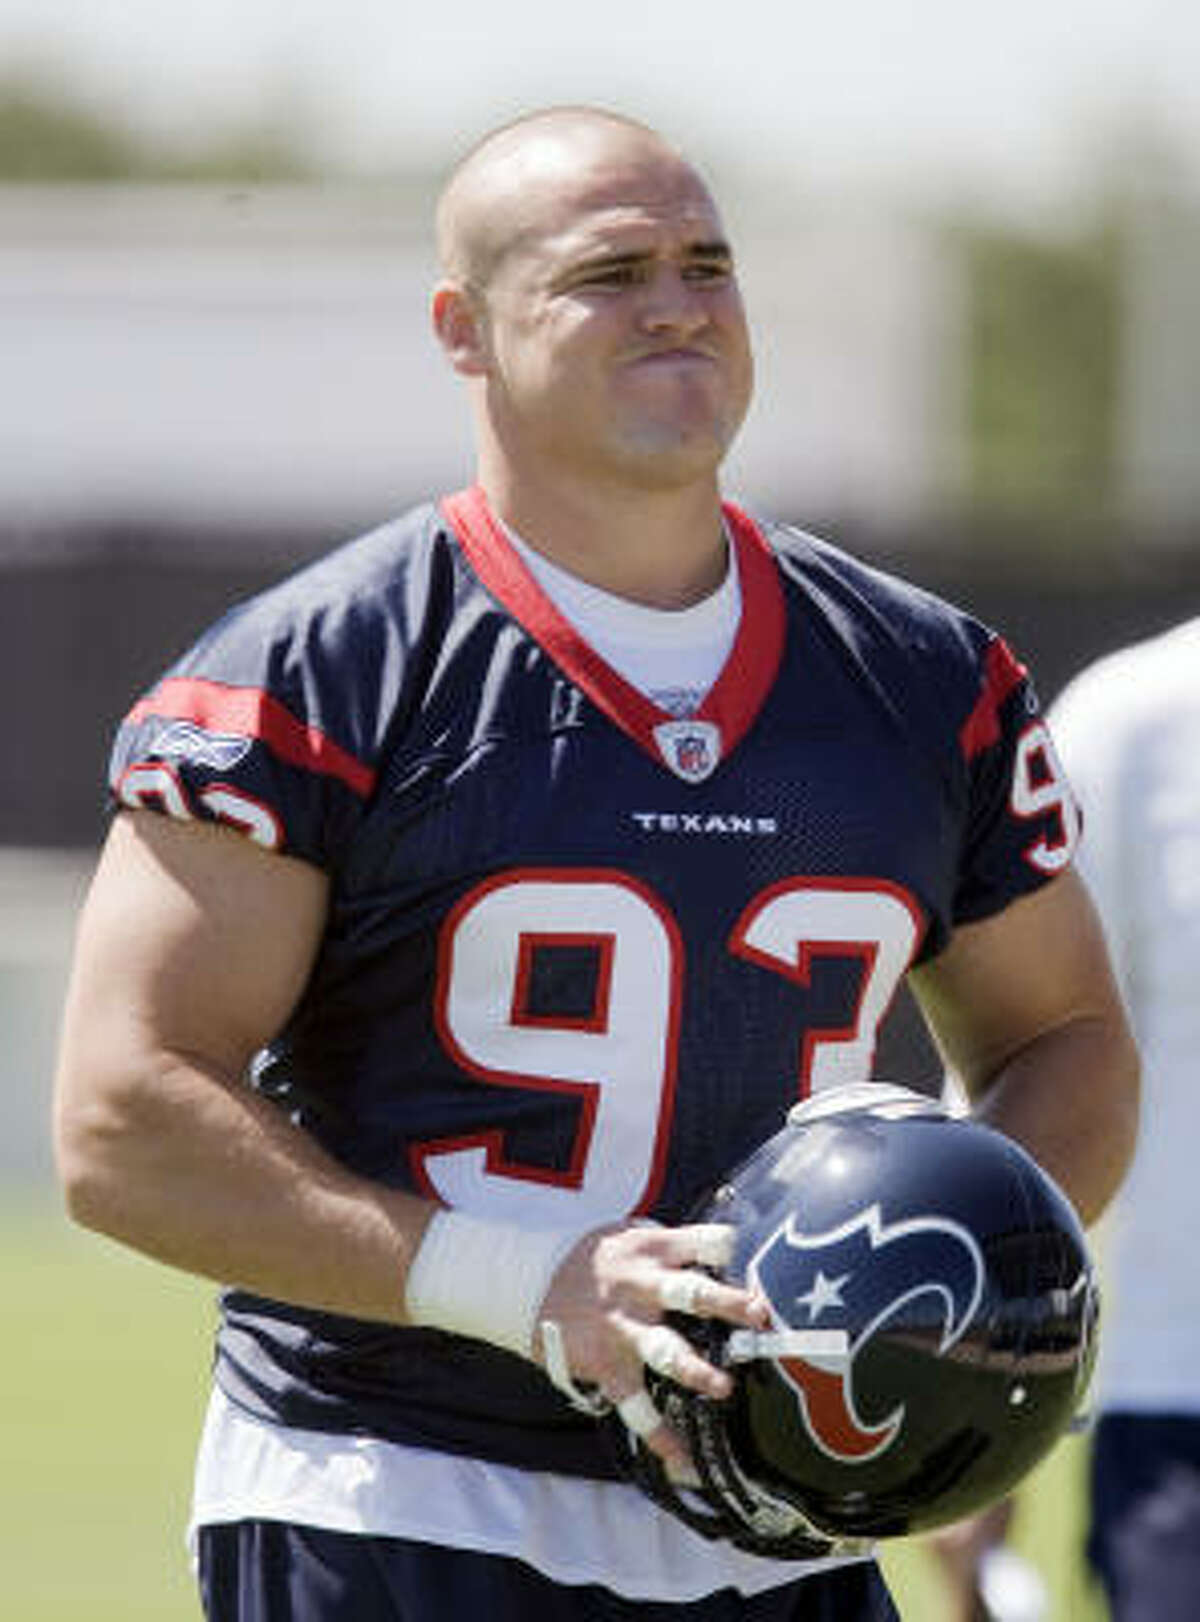 Once an undrafted free agent out of Boston College, defensive end Tim Bulman is now among the most respected players in the Texans' locker room and a reserve the coaches plan to lean on this season.